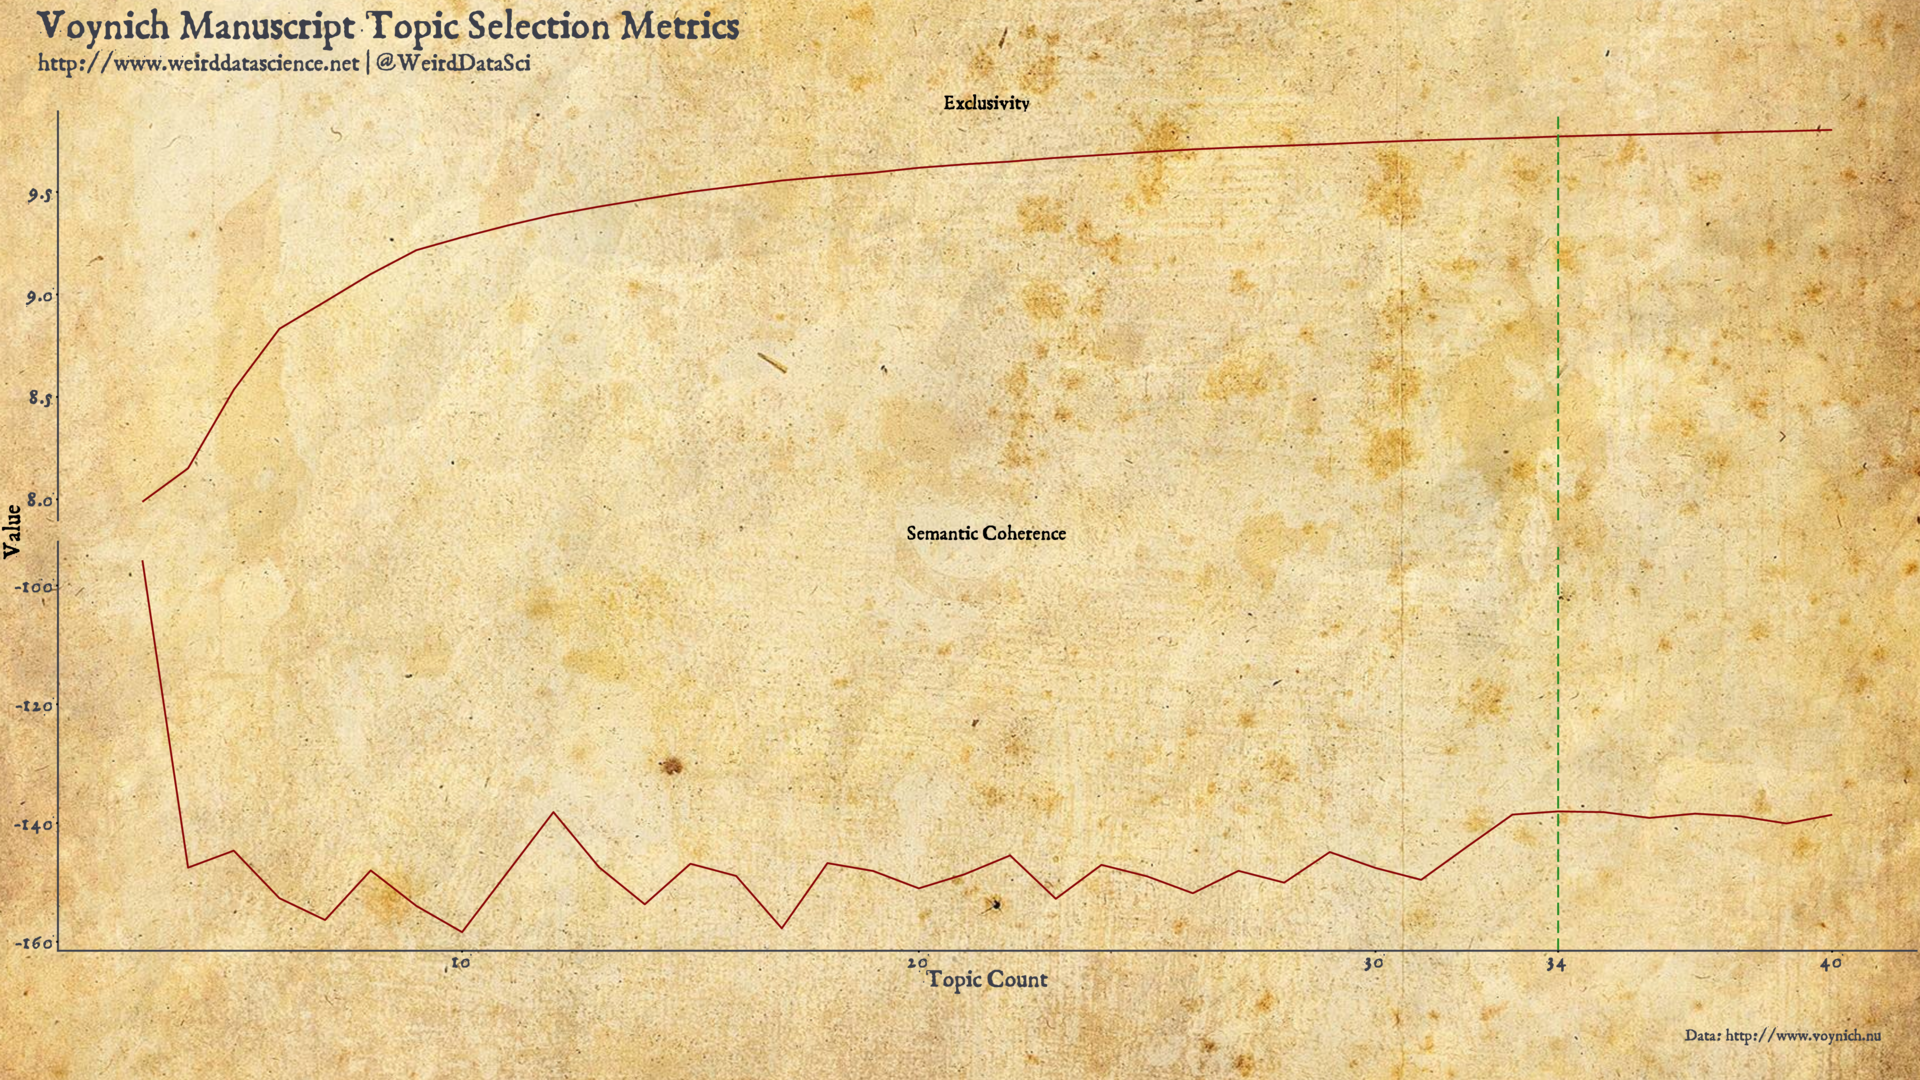 Voynich Topic Model Selection Metrics